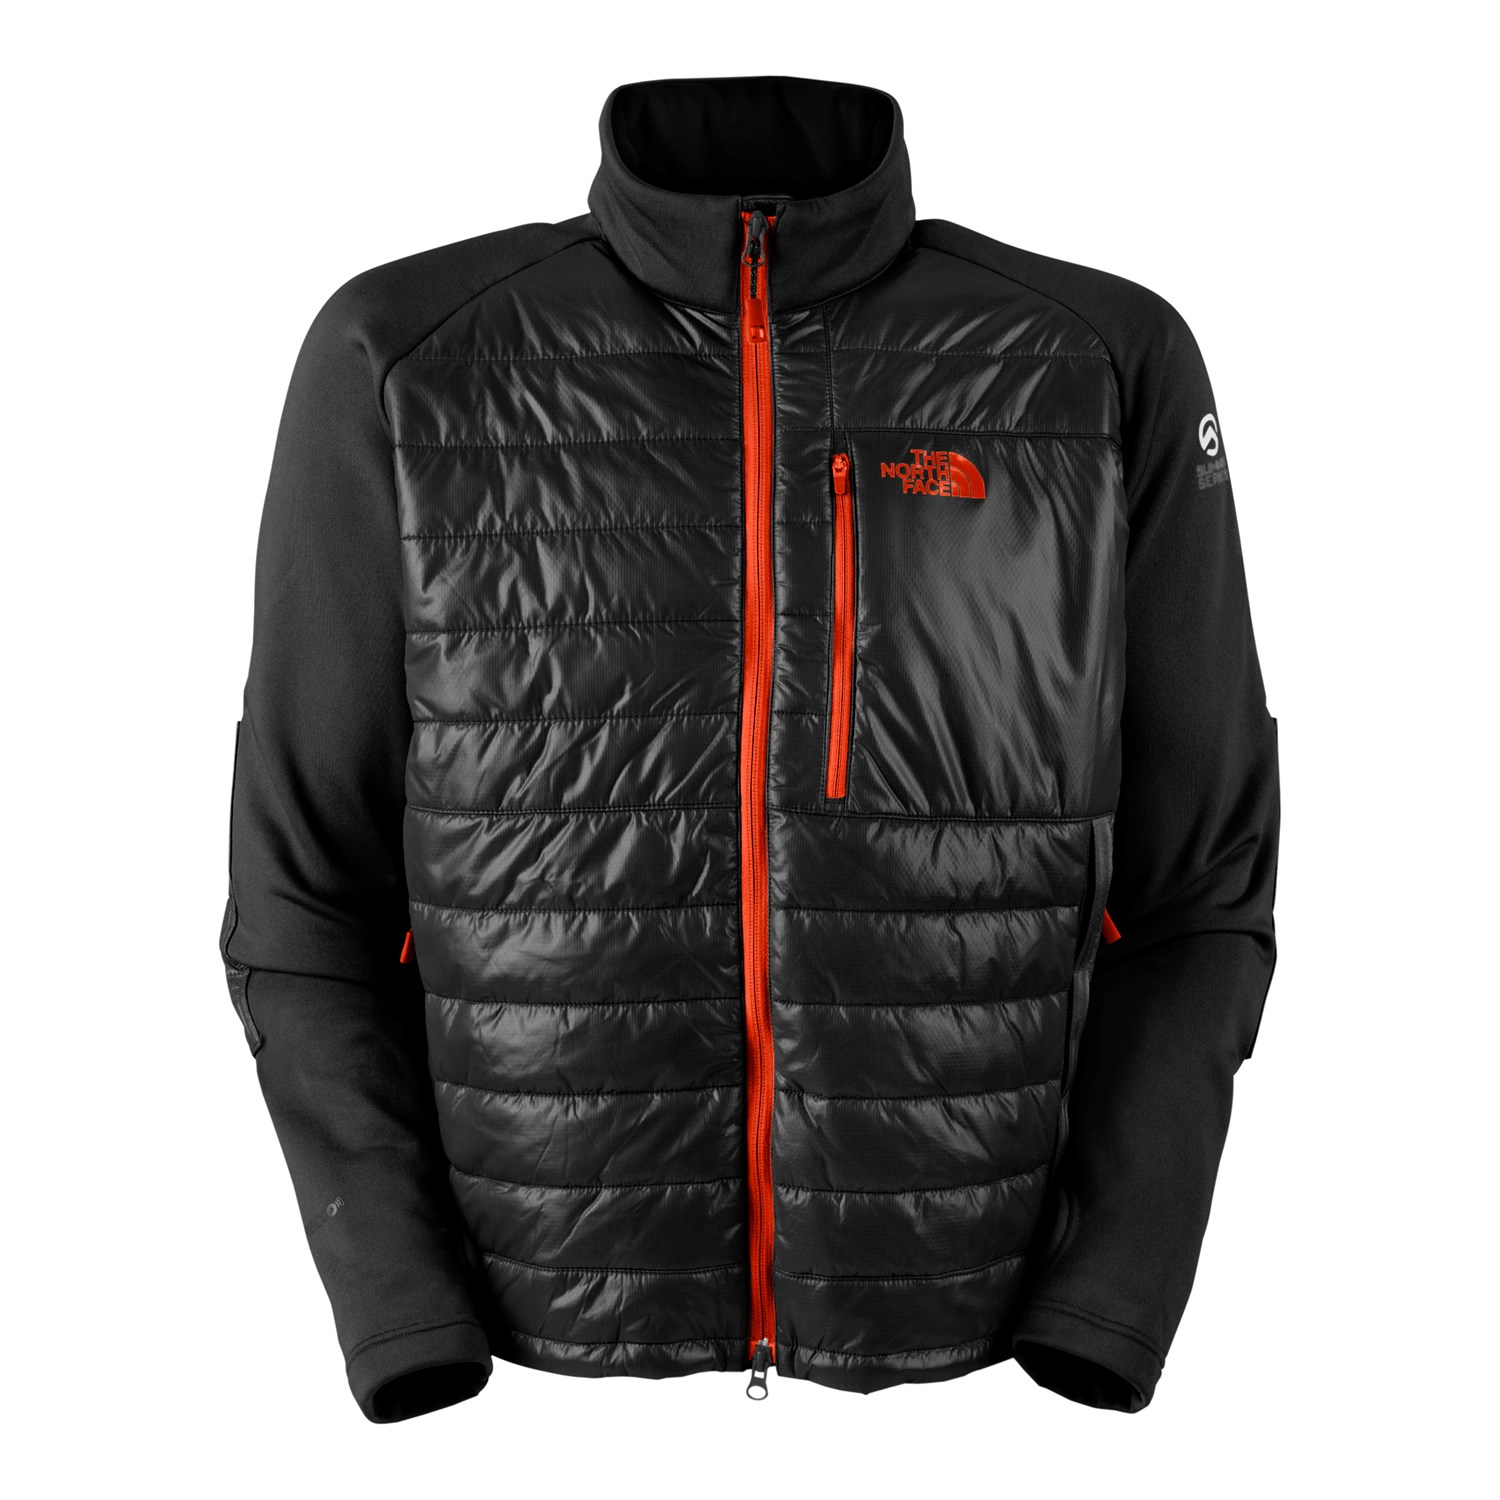 The North Face Apparel Corp. failed to keep it trustworthy. Please be warned that to describe security status of skillfulnep.tk we use data openly available on the Web, thus we cannot guarantee that no scam sites might have been mistakenly considered legit and no fraud or PC issues may occur in this regard.